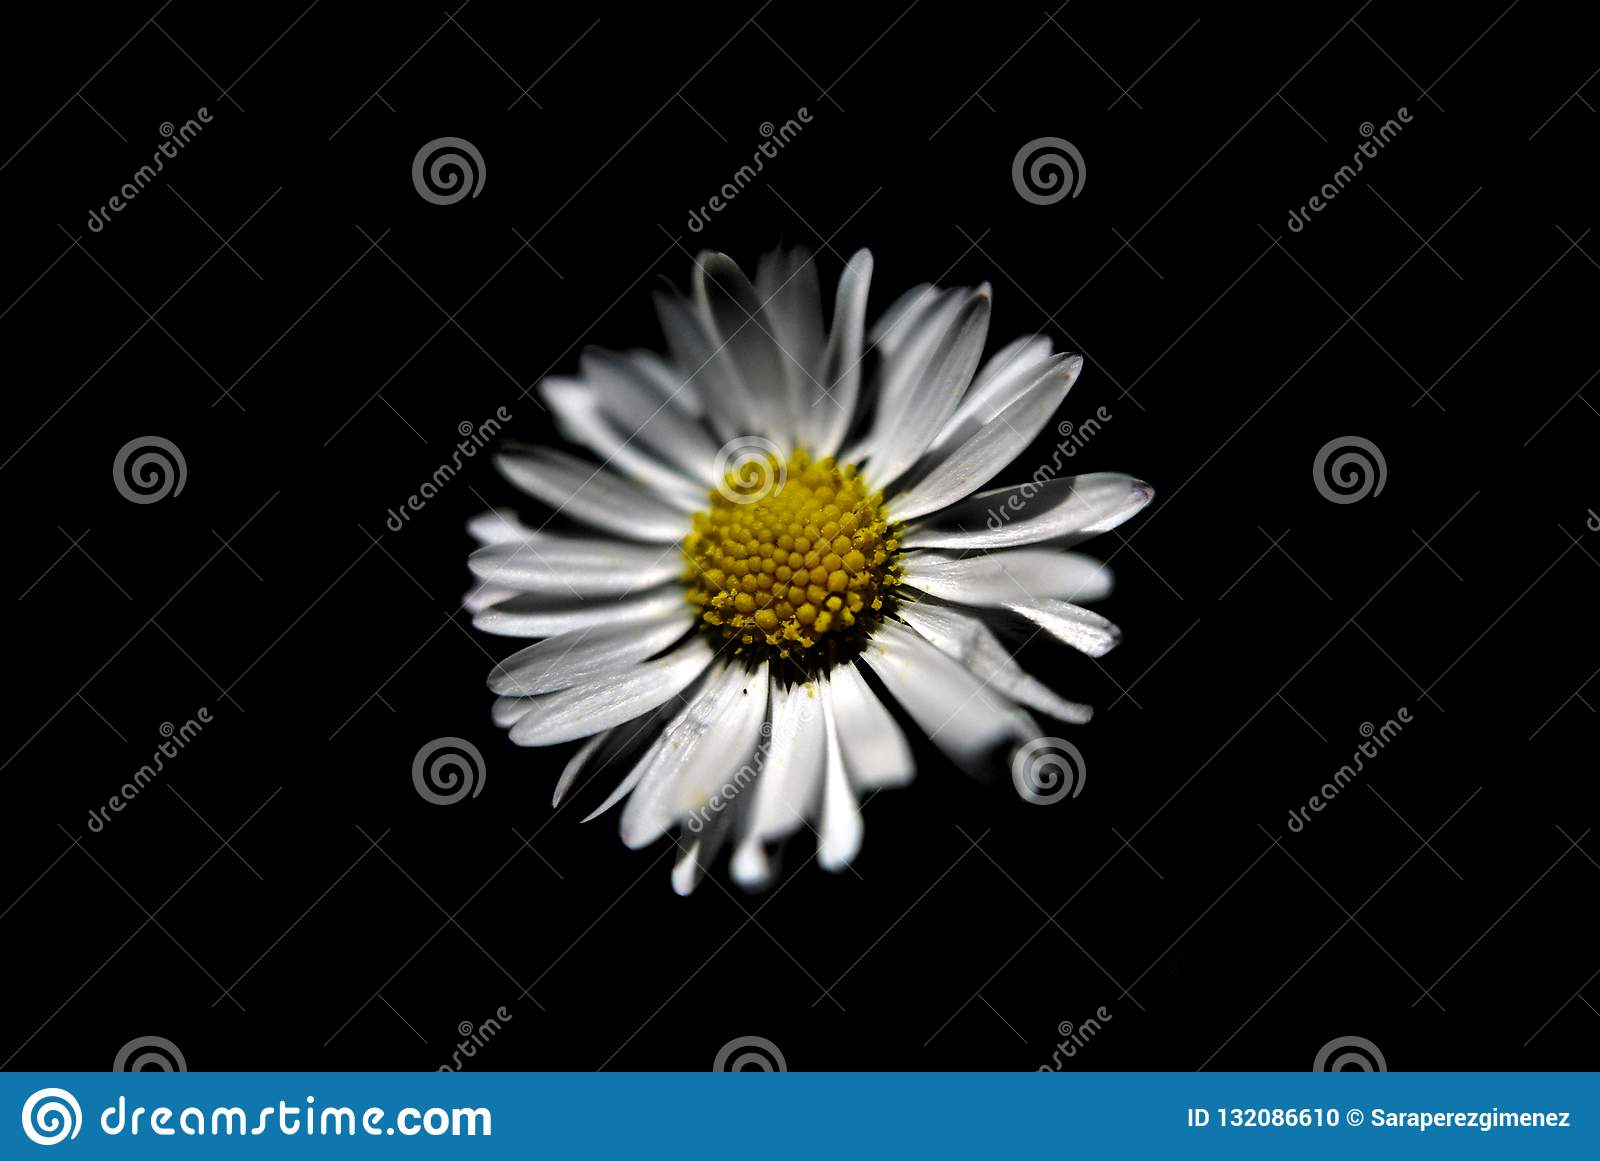 White Daisy Flower With Black Background Stock Photo Image Of